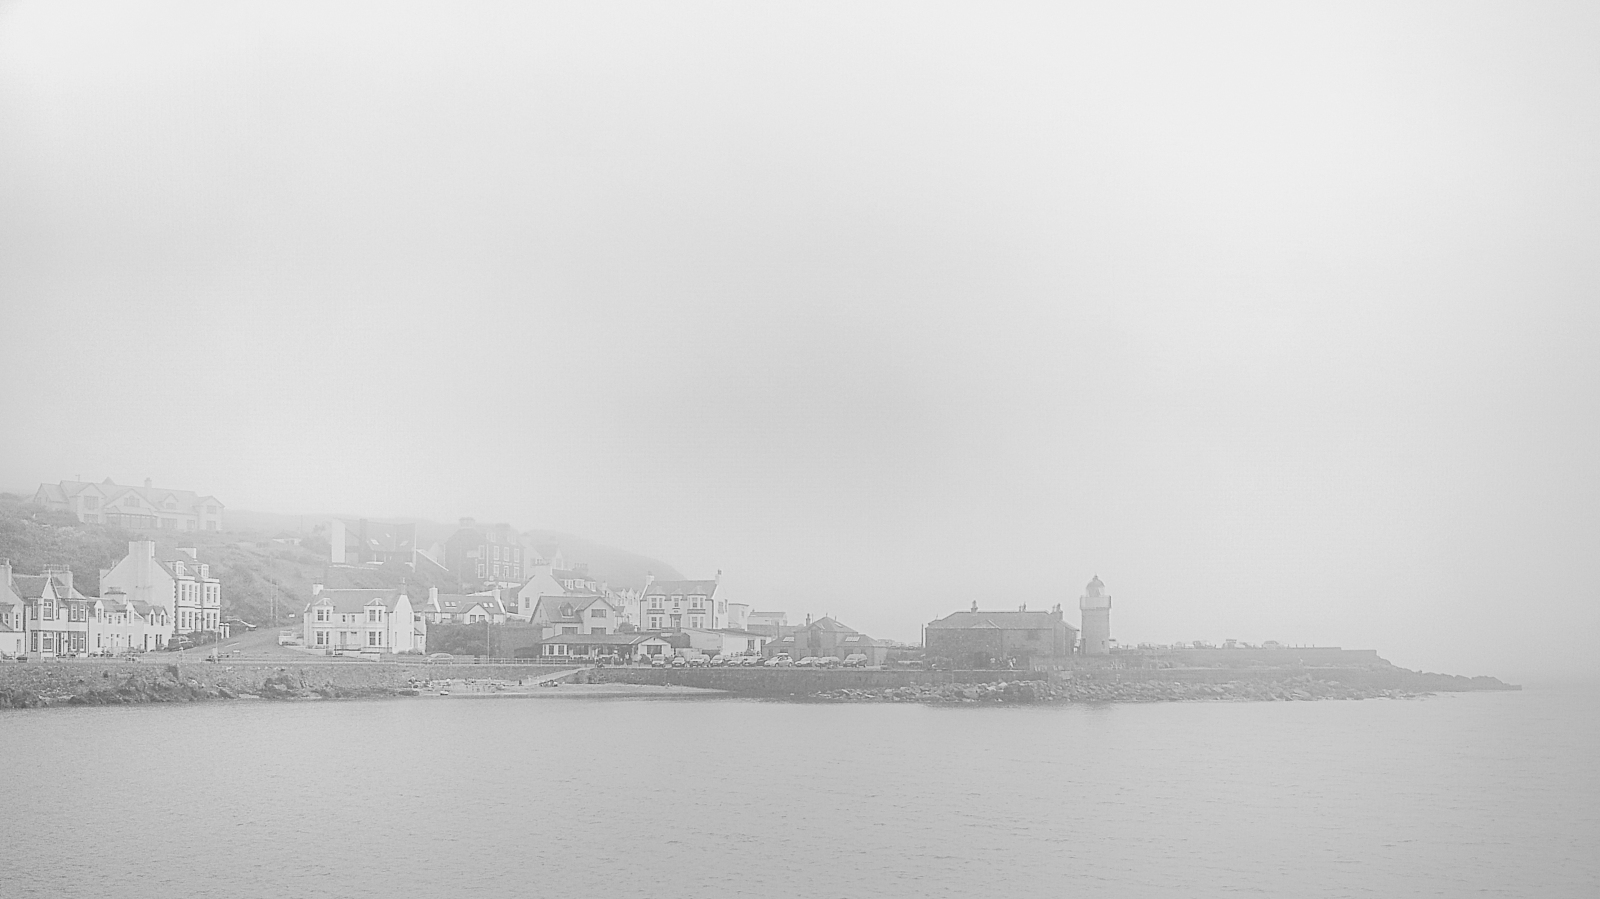 A moderate haar from the sea, obscuring the village in the distance.